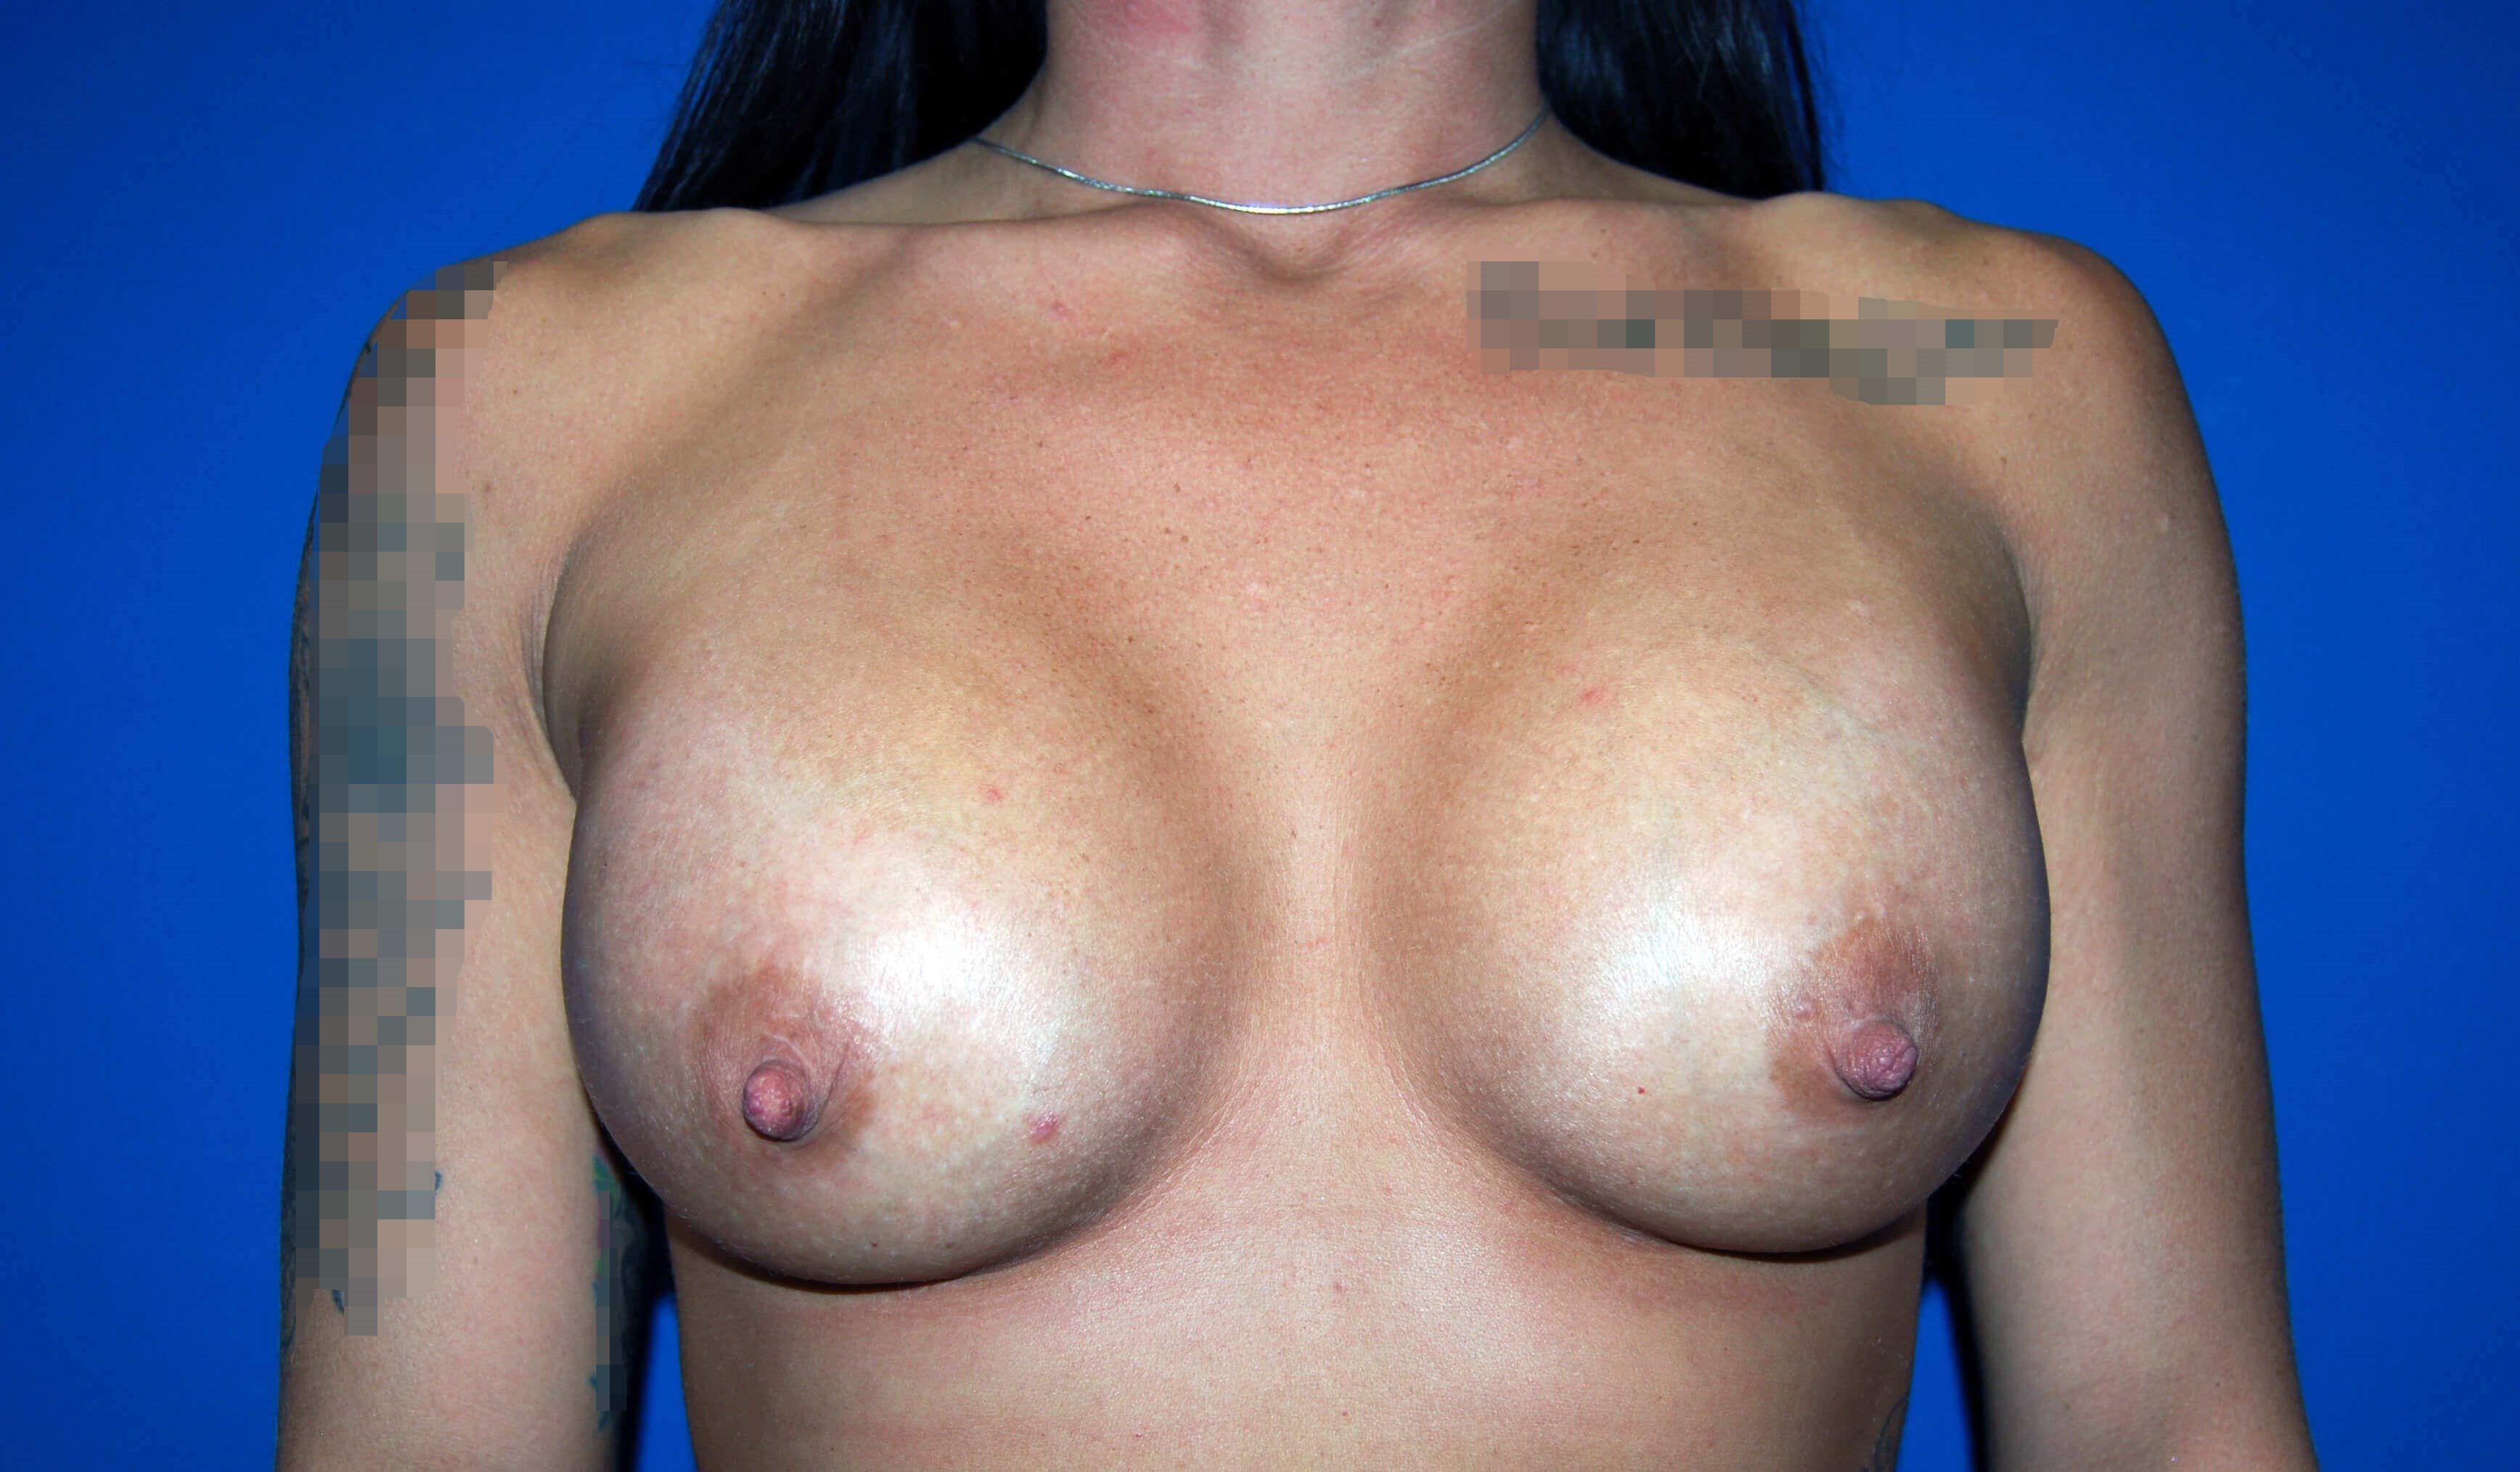 Front View After 355cc Implants